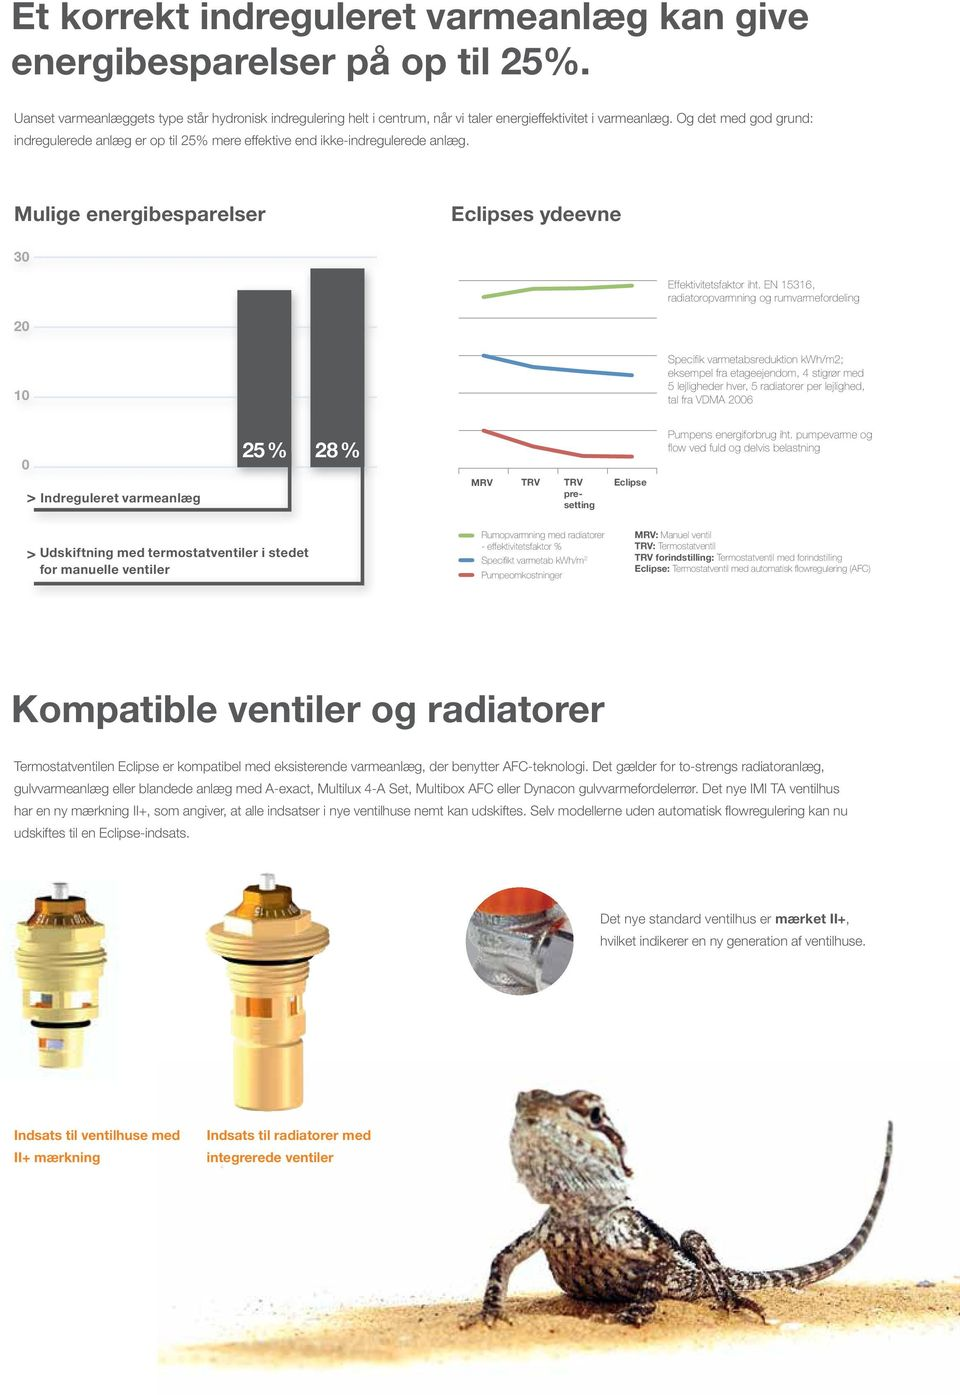 EN 15316, EN 15316, radiatoropvarmning room heating og and rumvarmefordeling heating distribution 10 Specifik Specific varmetabsreduktion heat loss reduction kwh/m2; example eksempel multi